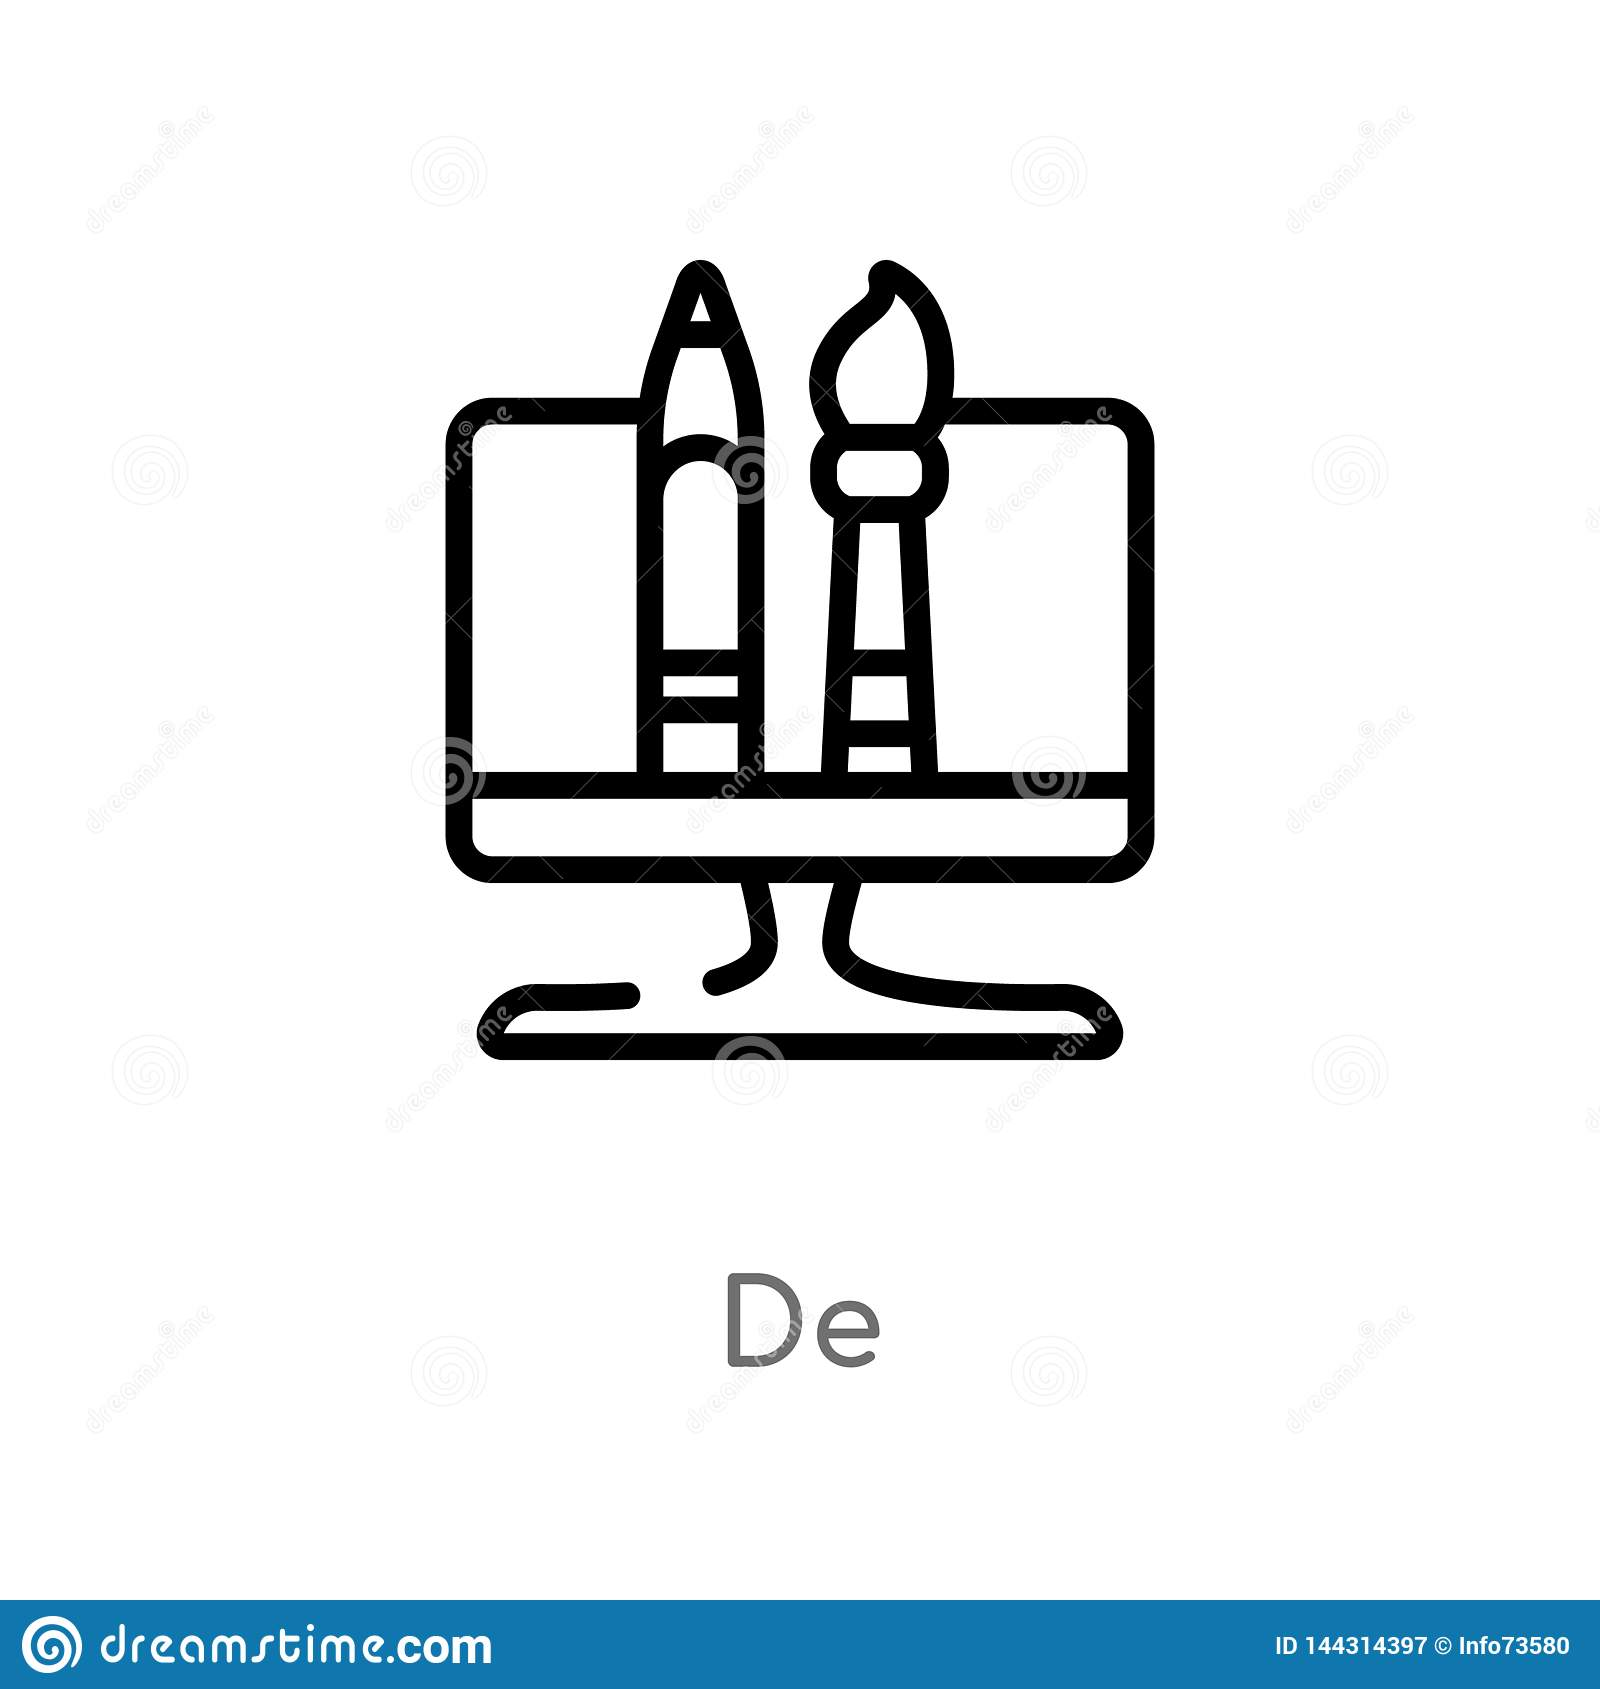 Icono de outline de vector l?nea simple negra aislada ejemplo del elemento del concepto de la optimizaci?n del Search Engine Vect